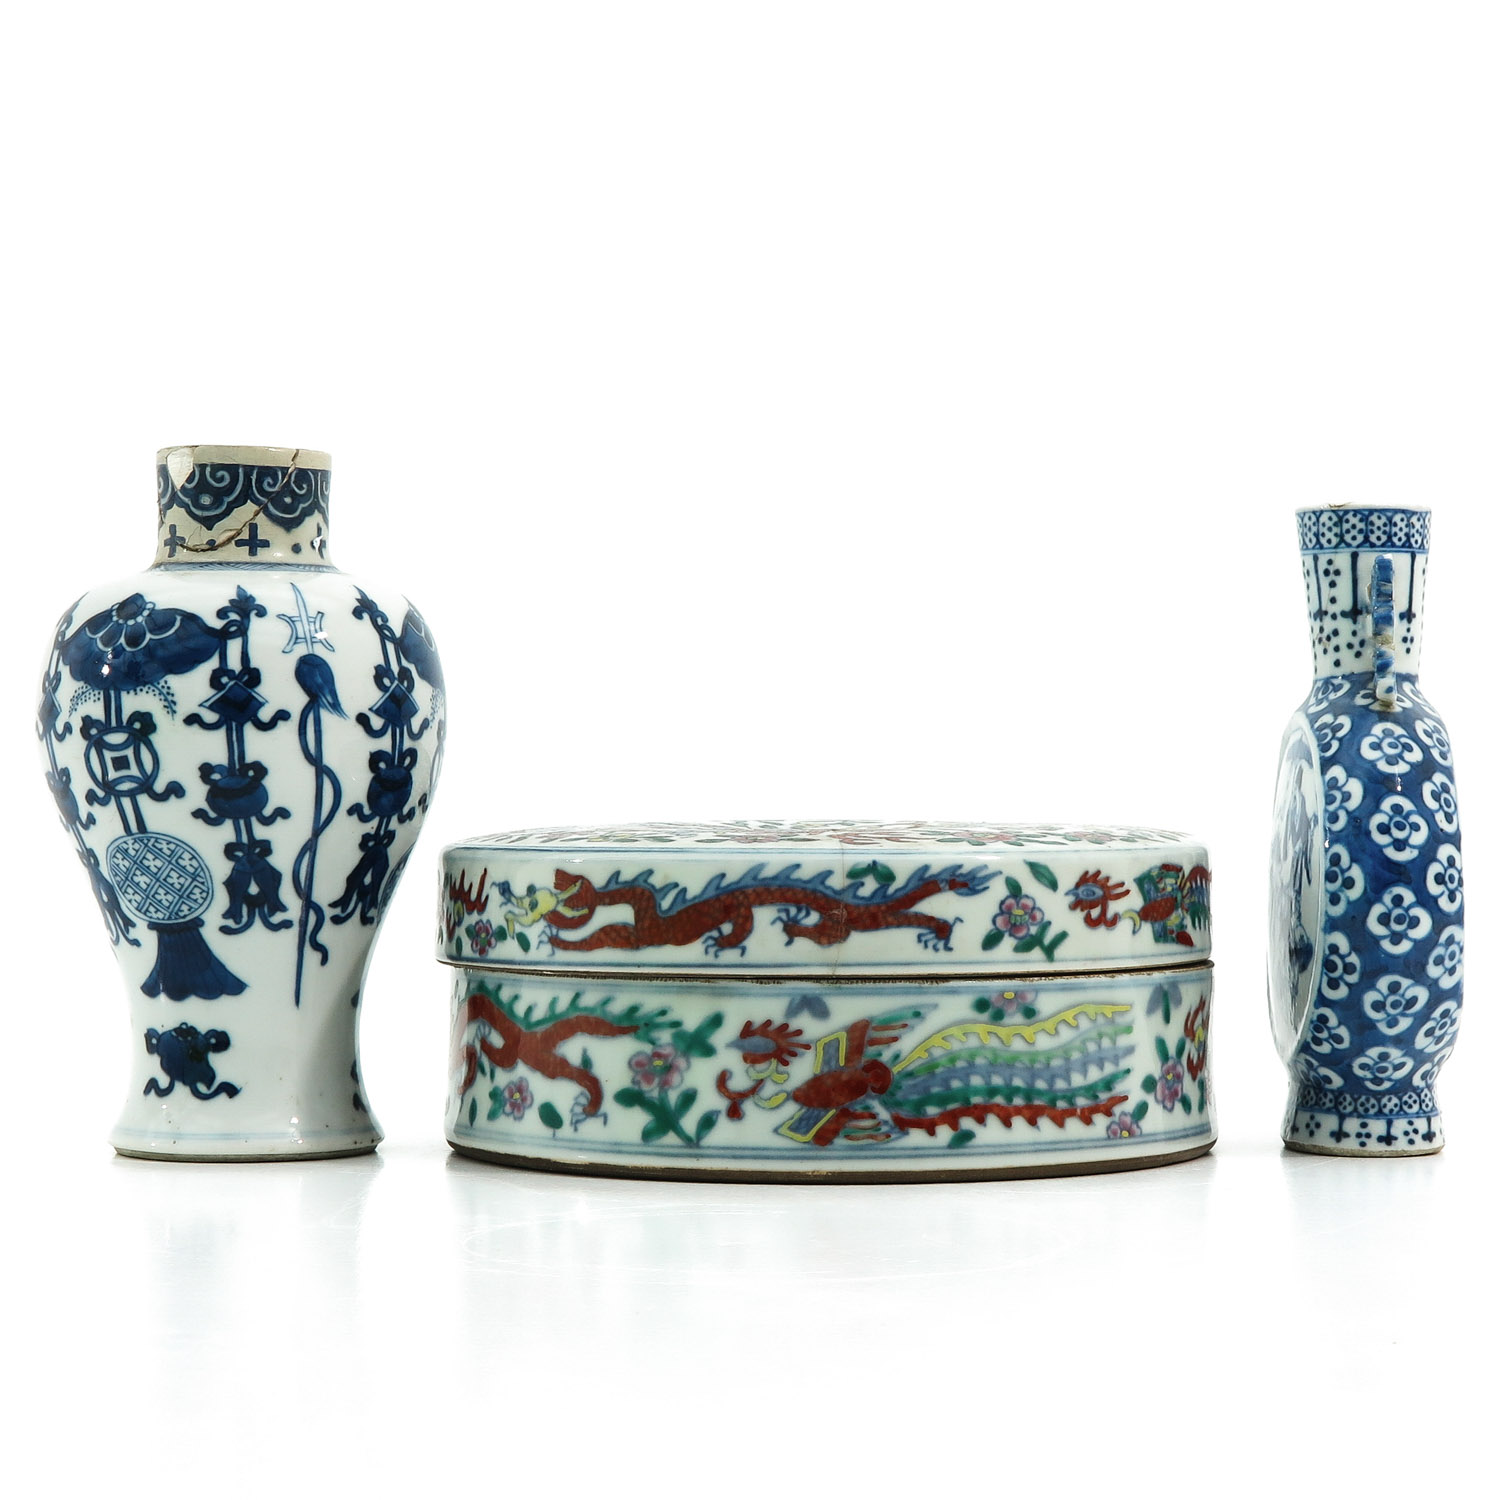 A Diverse Collection of Porcelain - Image 4 of 9